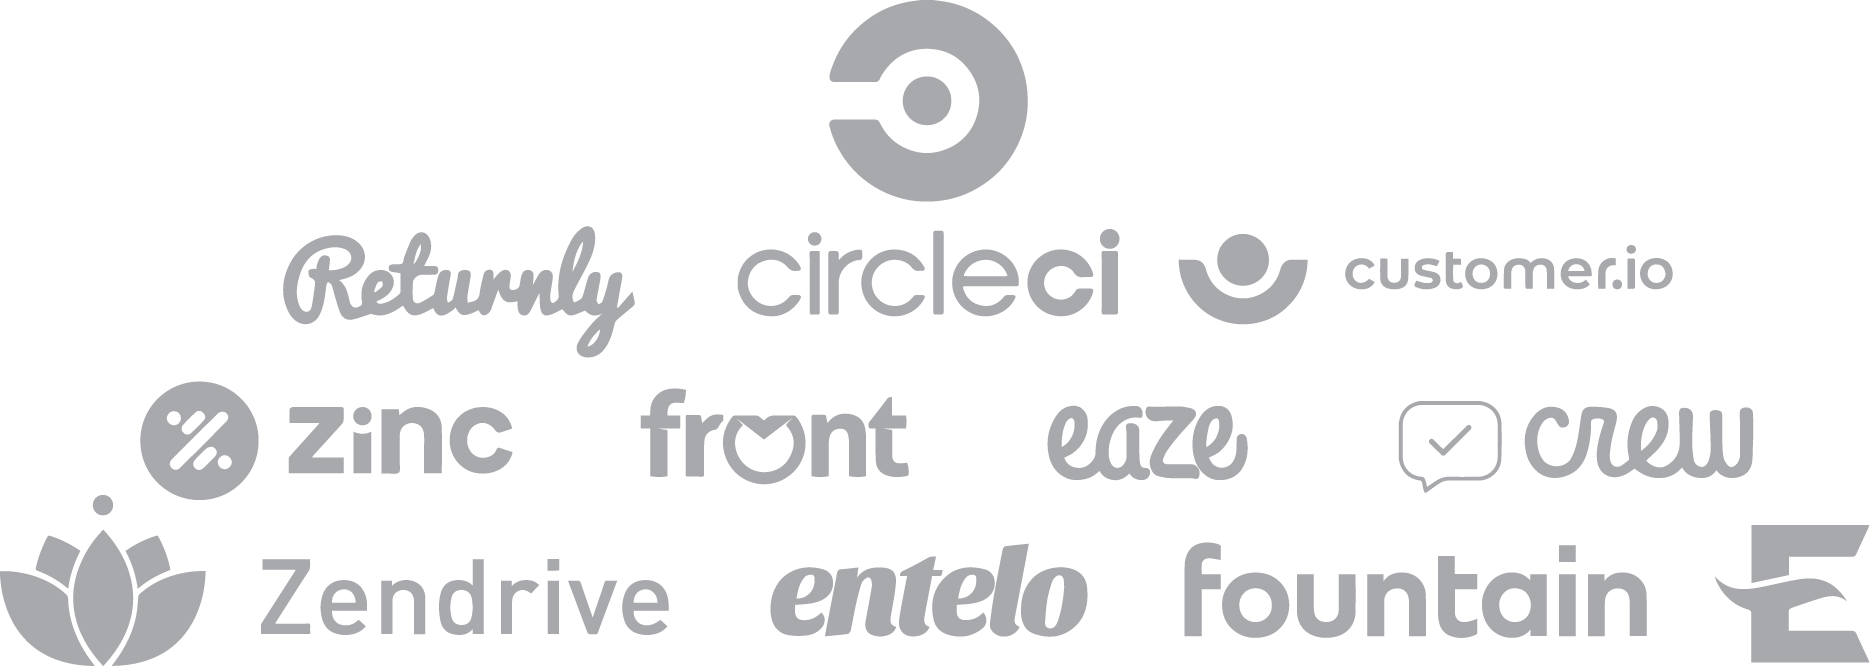 11 Client Logos.png